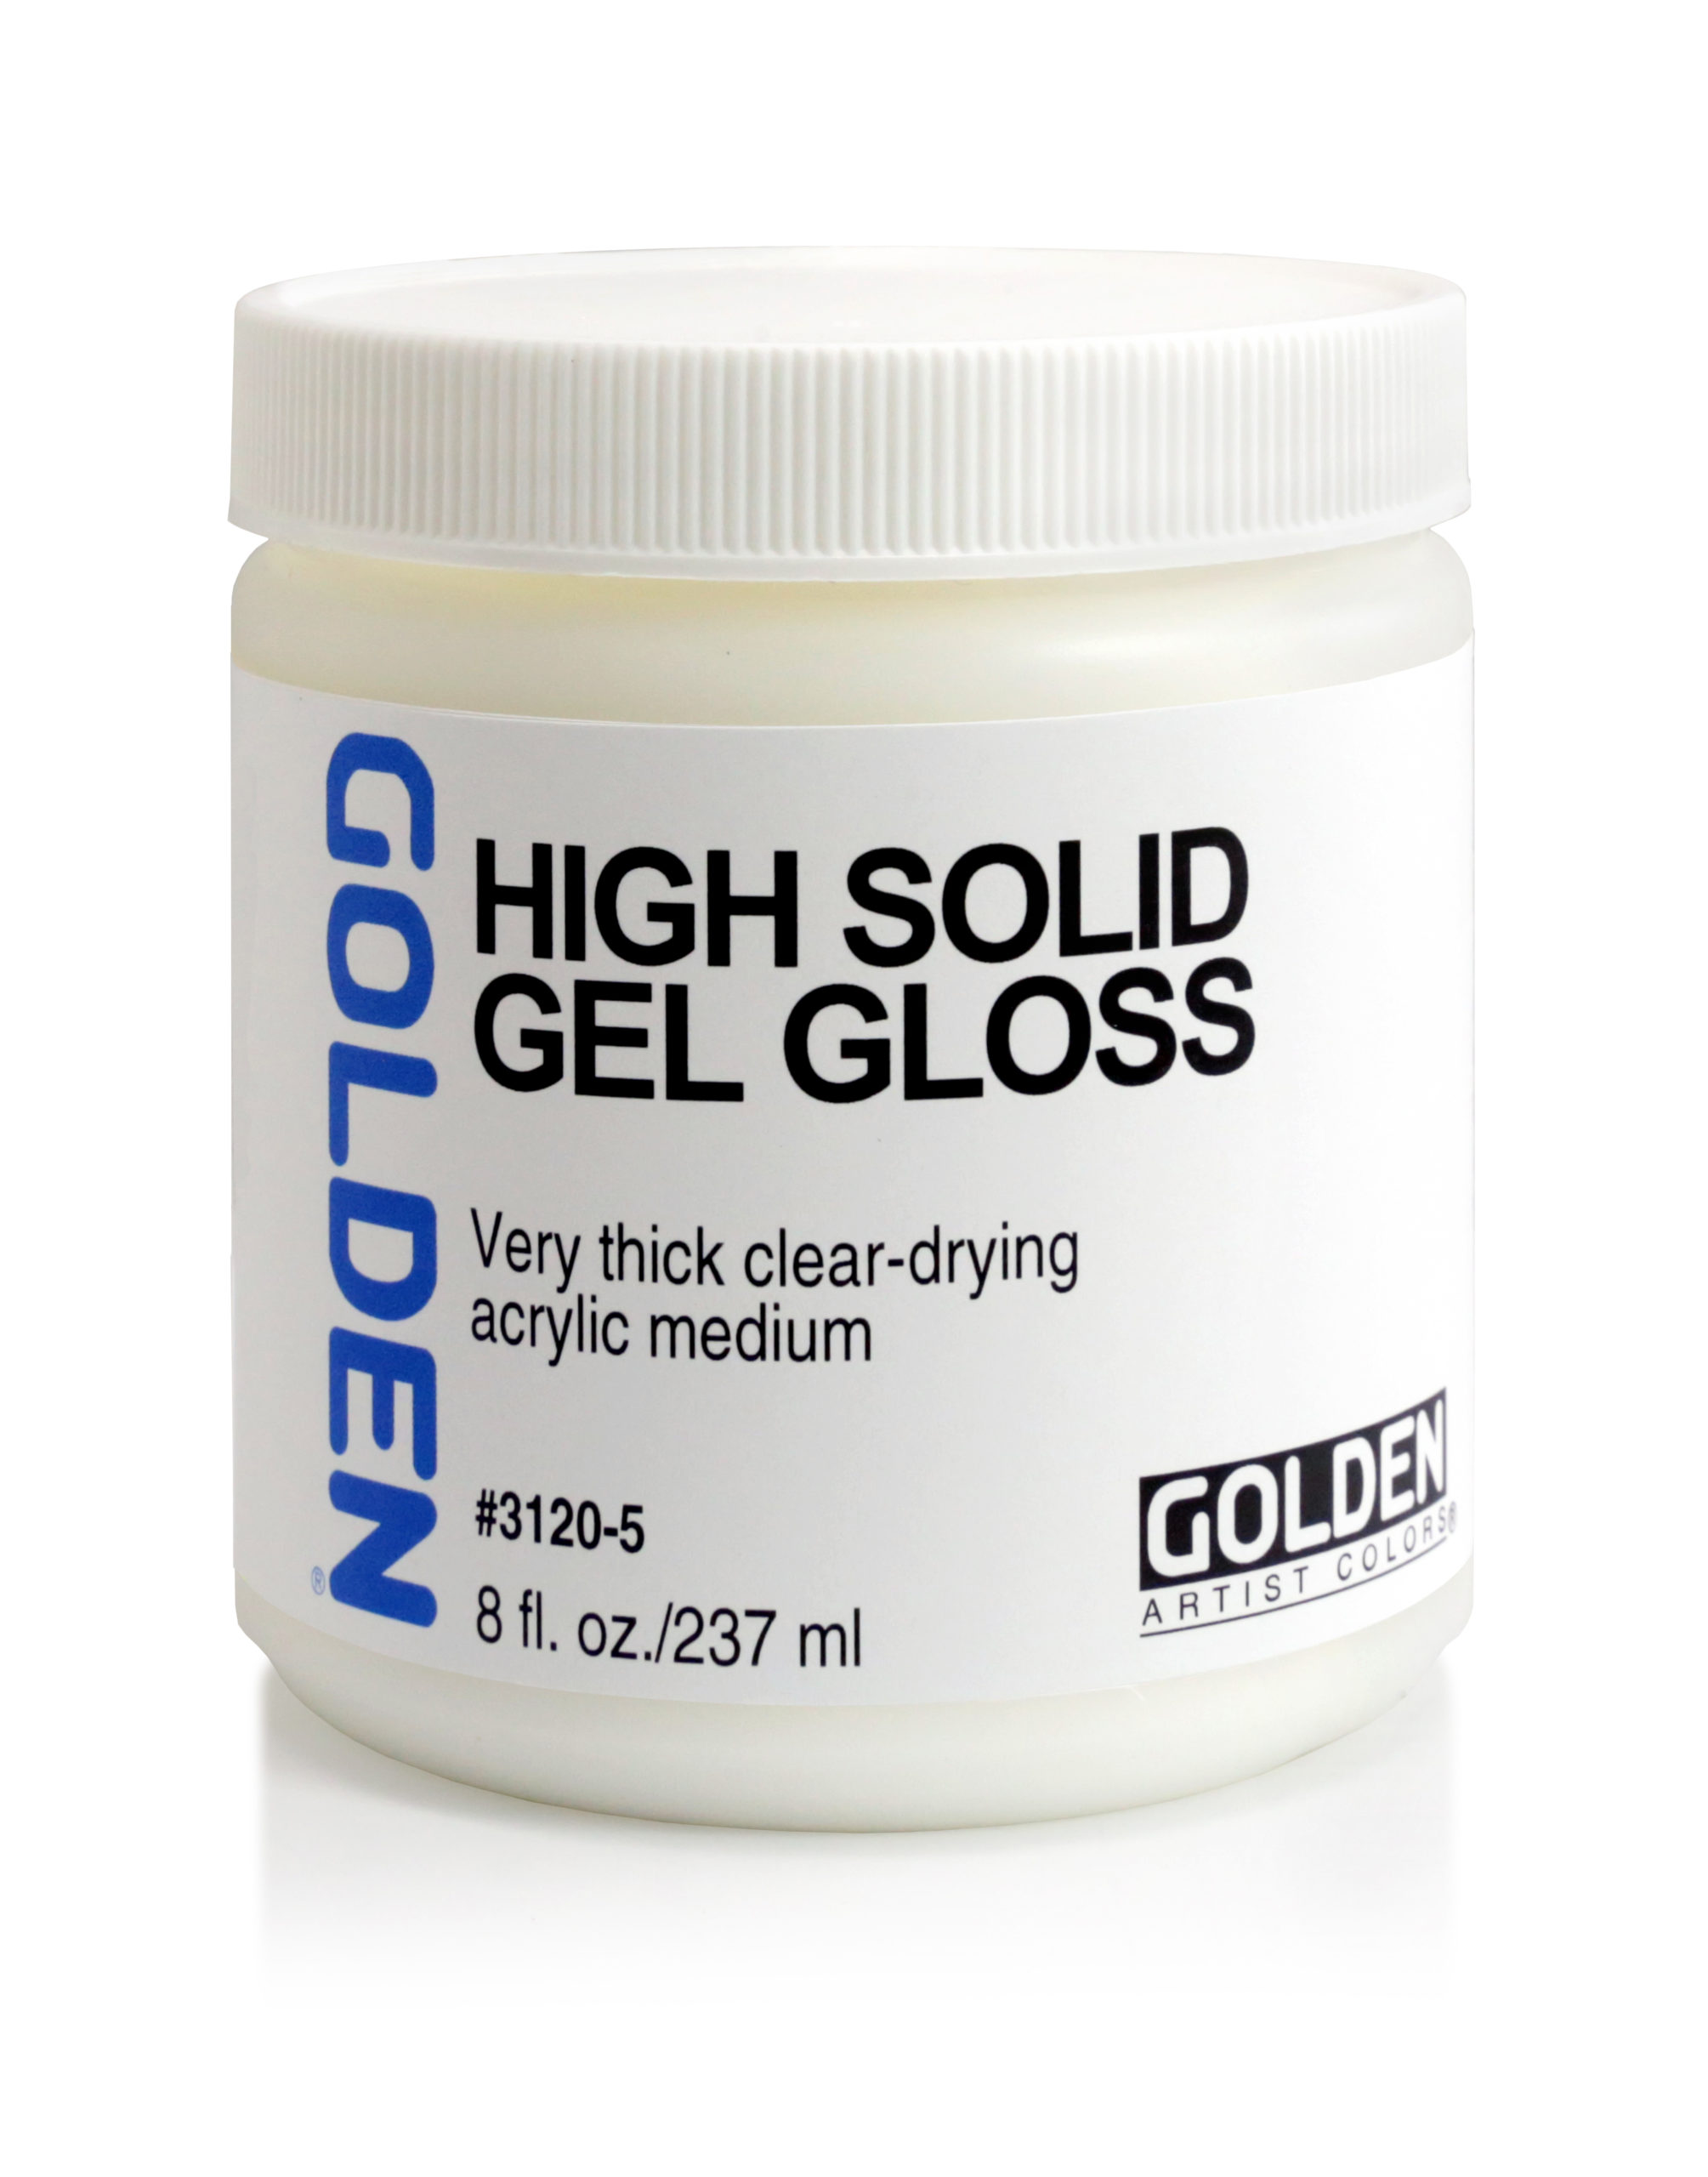 High Solid Gel Gloss